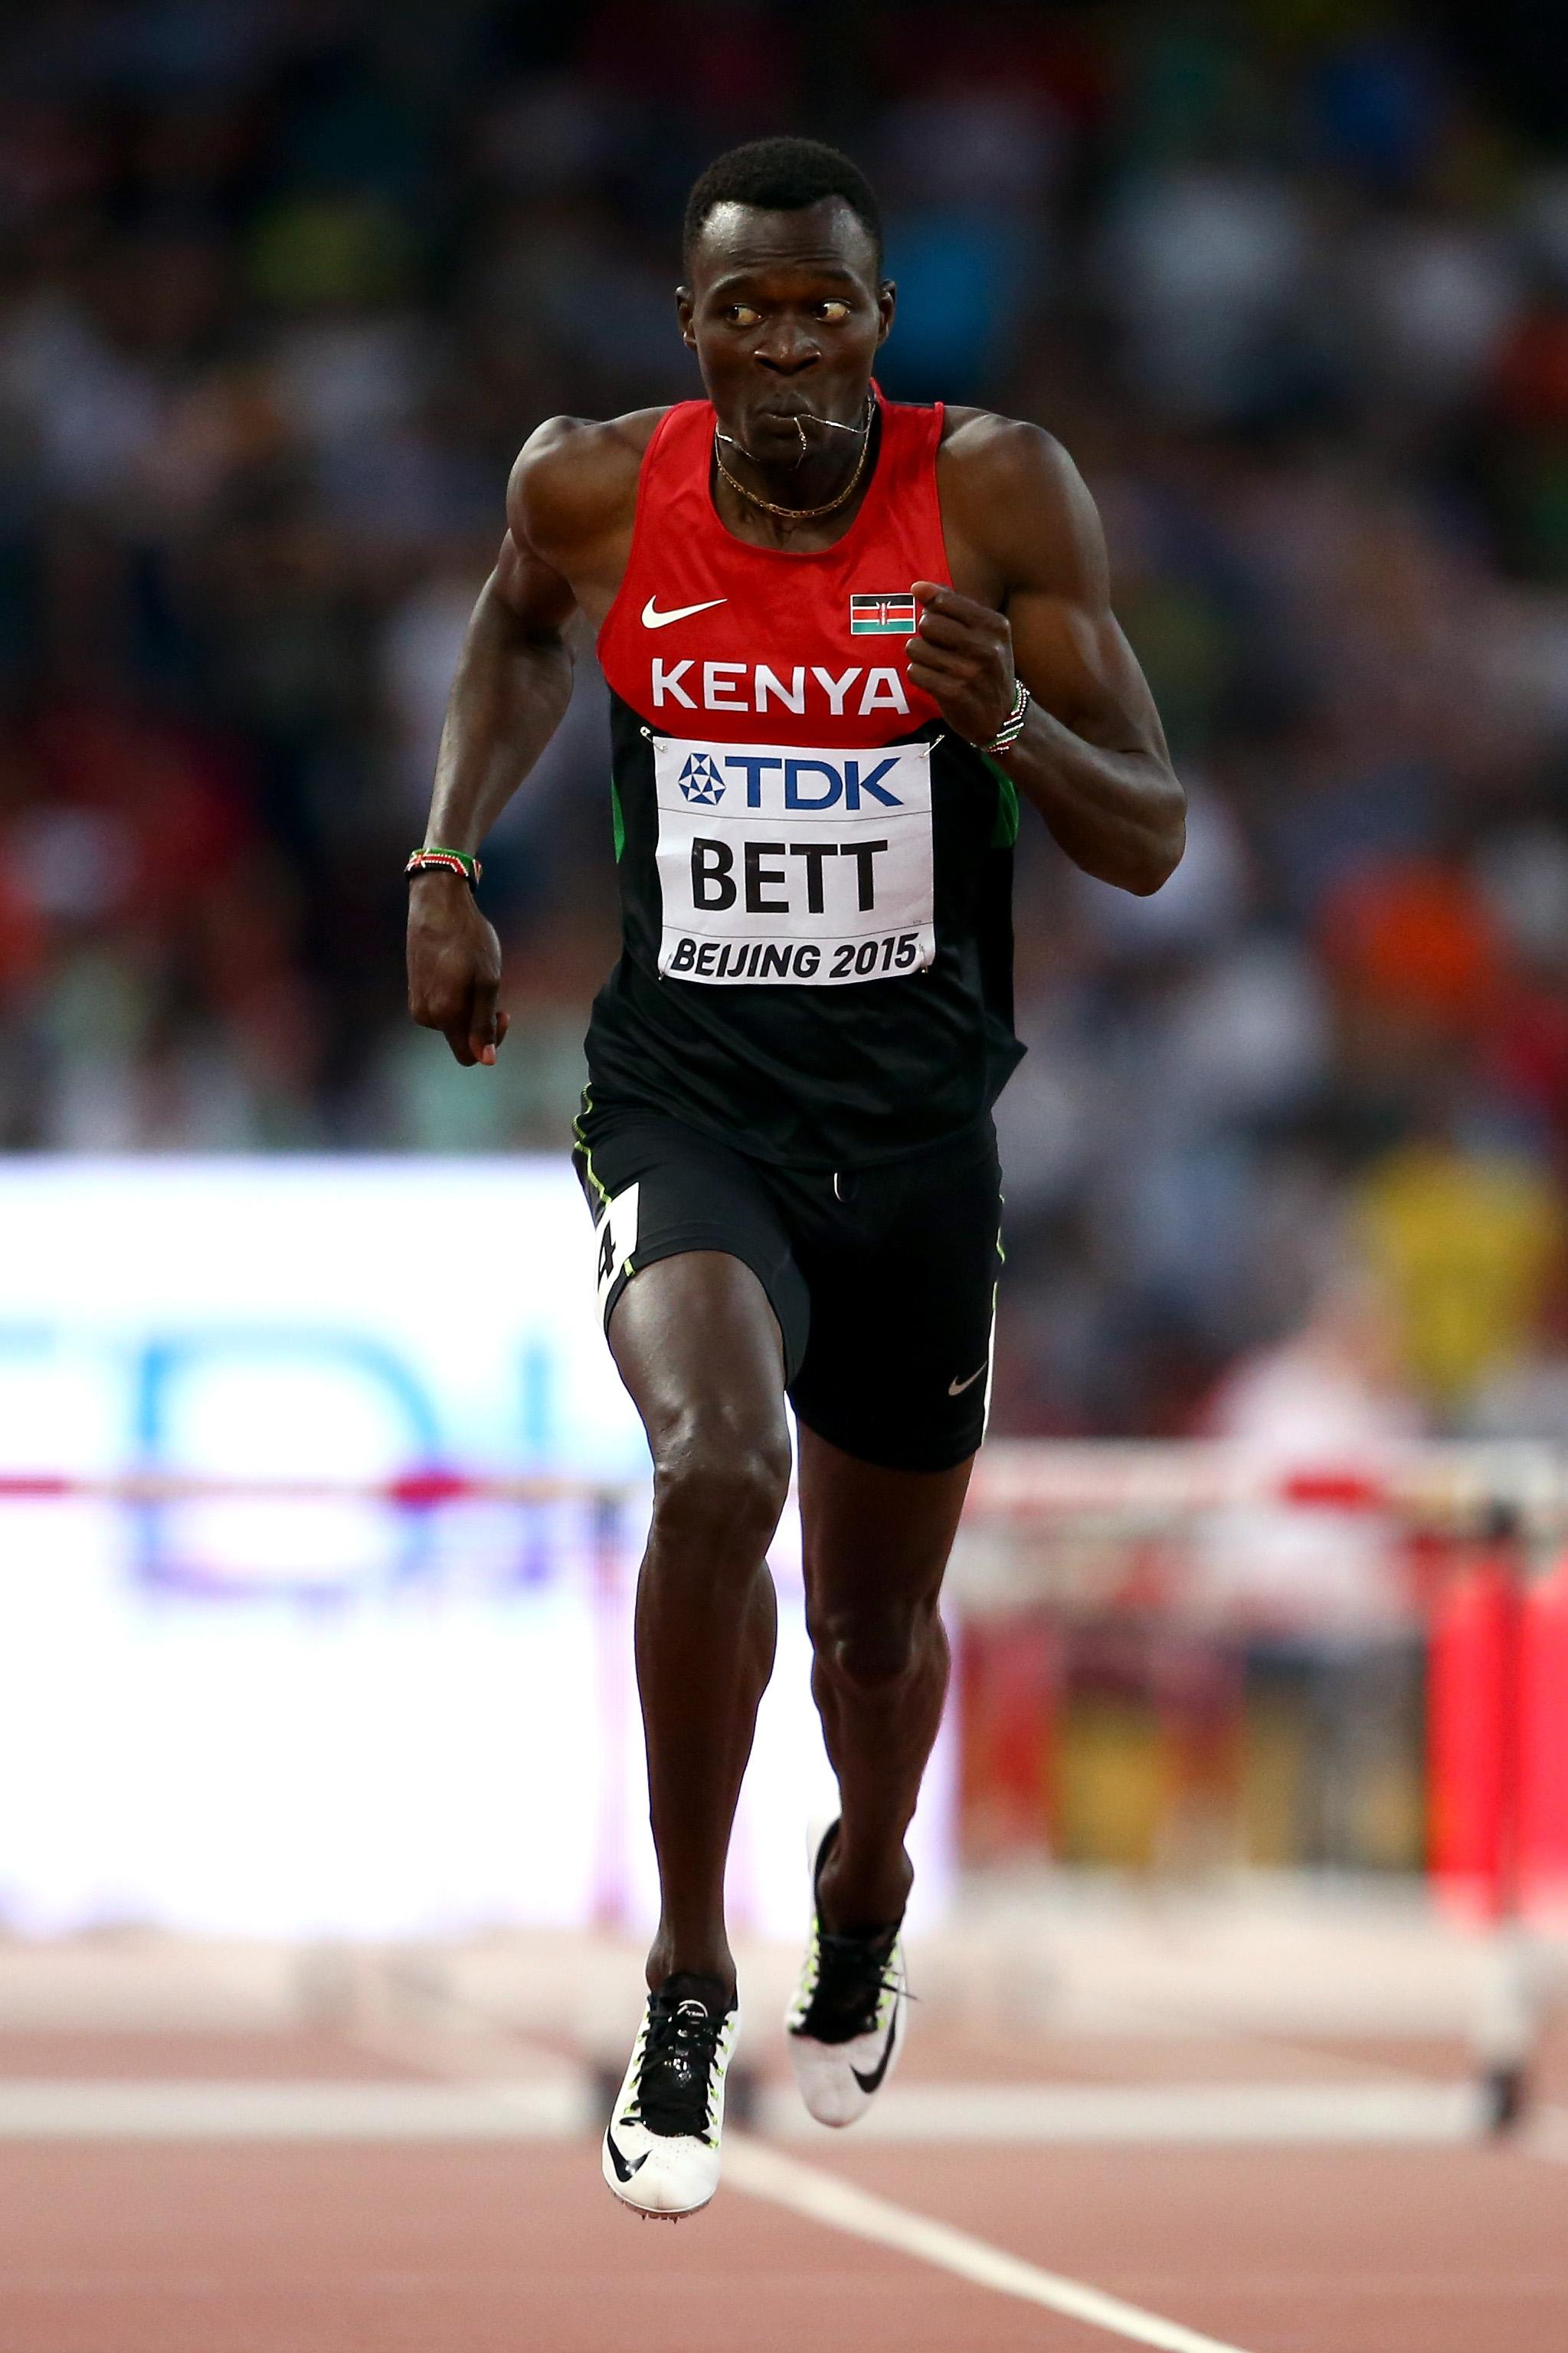 Bett was a 400m hurdles runner and was a hero in Kenya after winning gold at the World Championships in 2015